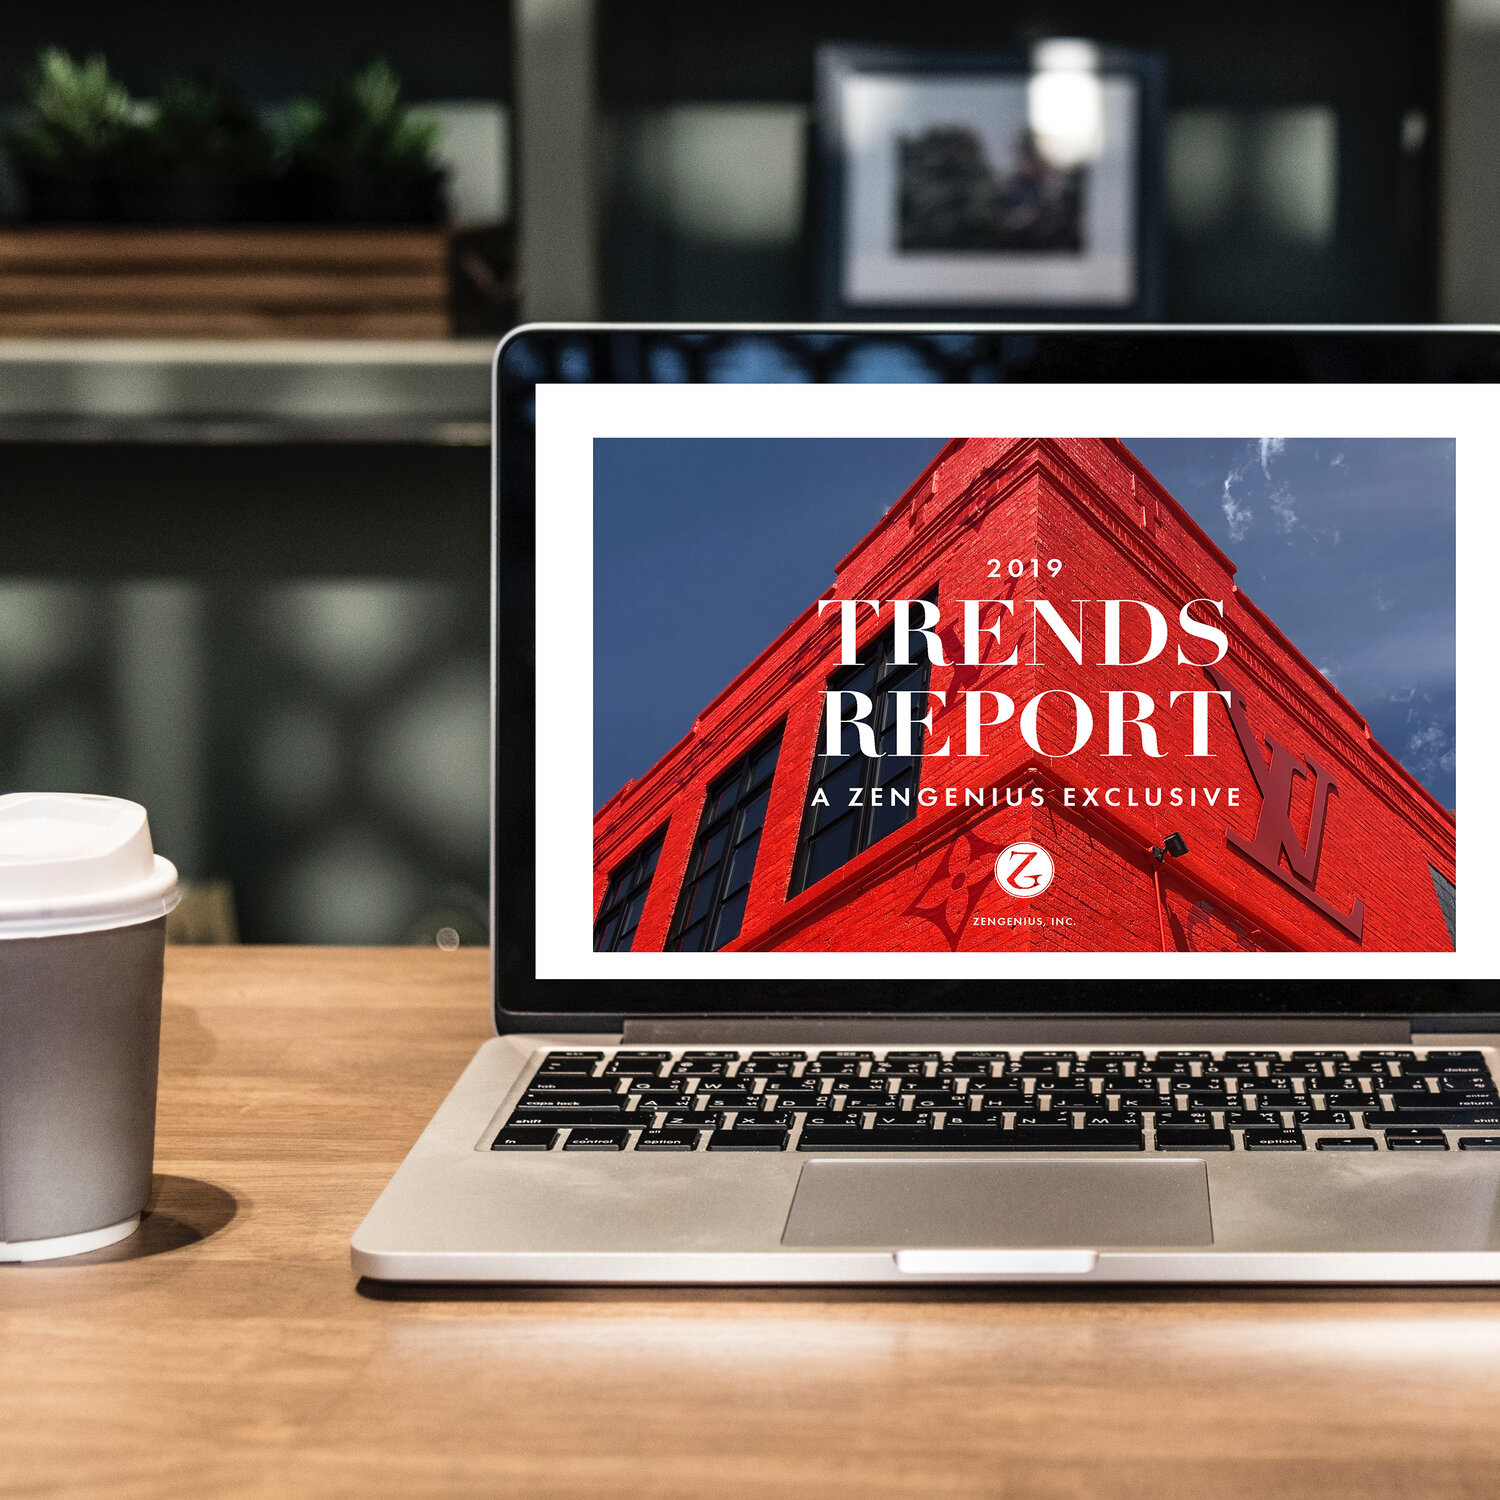 2019TRENDSFREE - Click the button and enter the code 2019TRENDSFREE at checkout to download your complimentary copy of our 2019 Trends Report.Browse through more than 125 pages to experience the energy of the industry and get ZenGenius' take on the latest trends seen in the world of retail and brand activations.